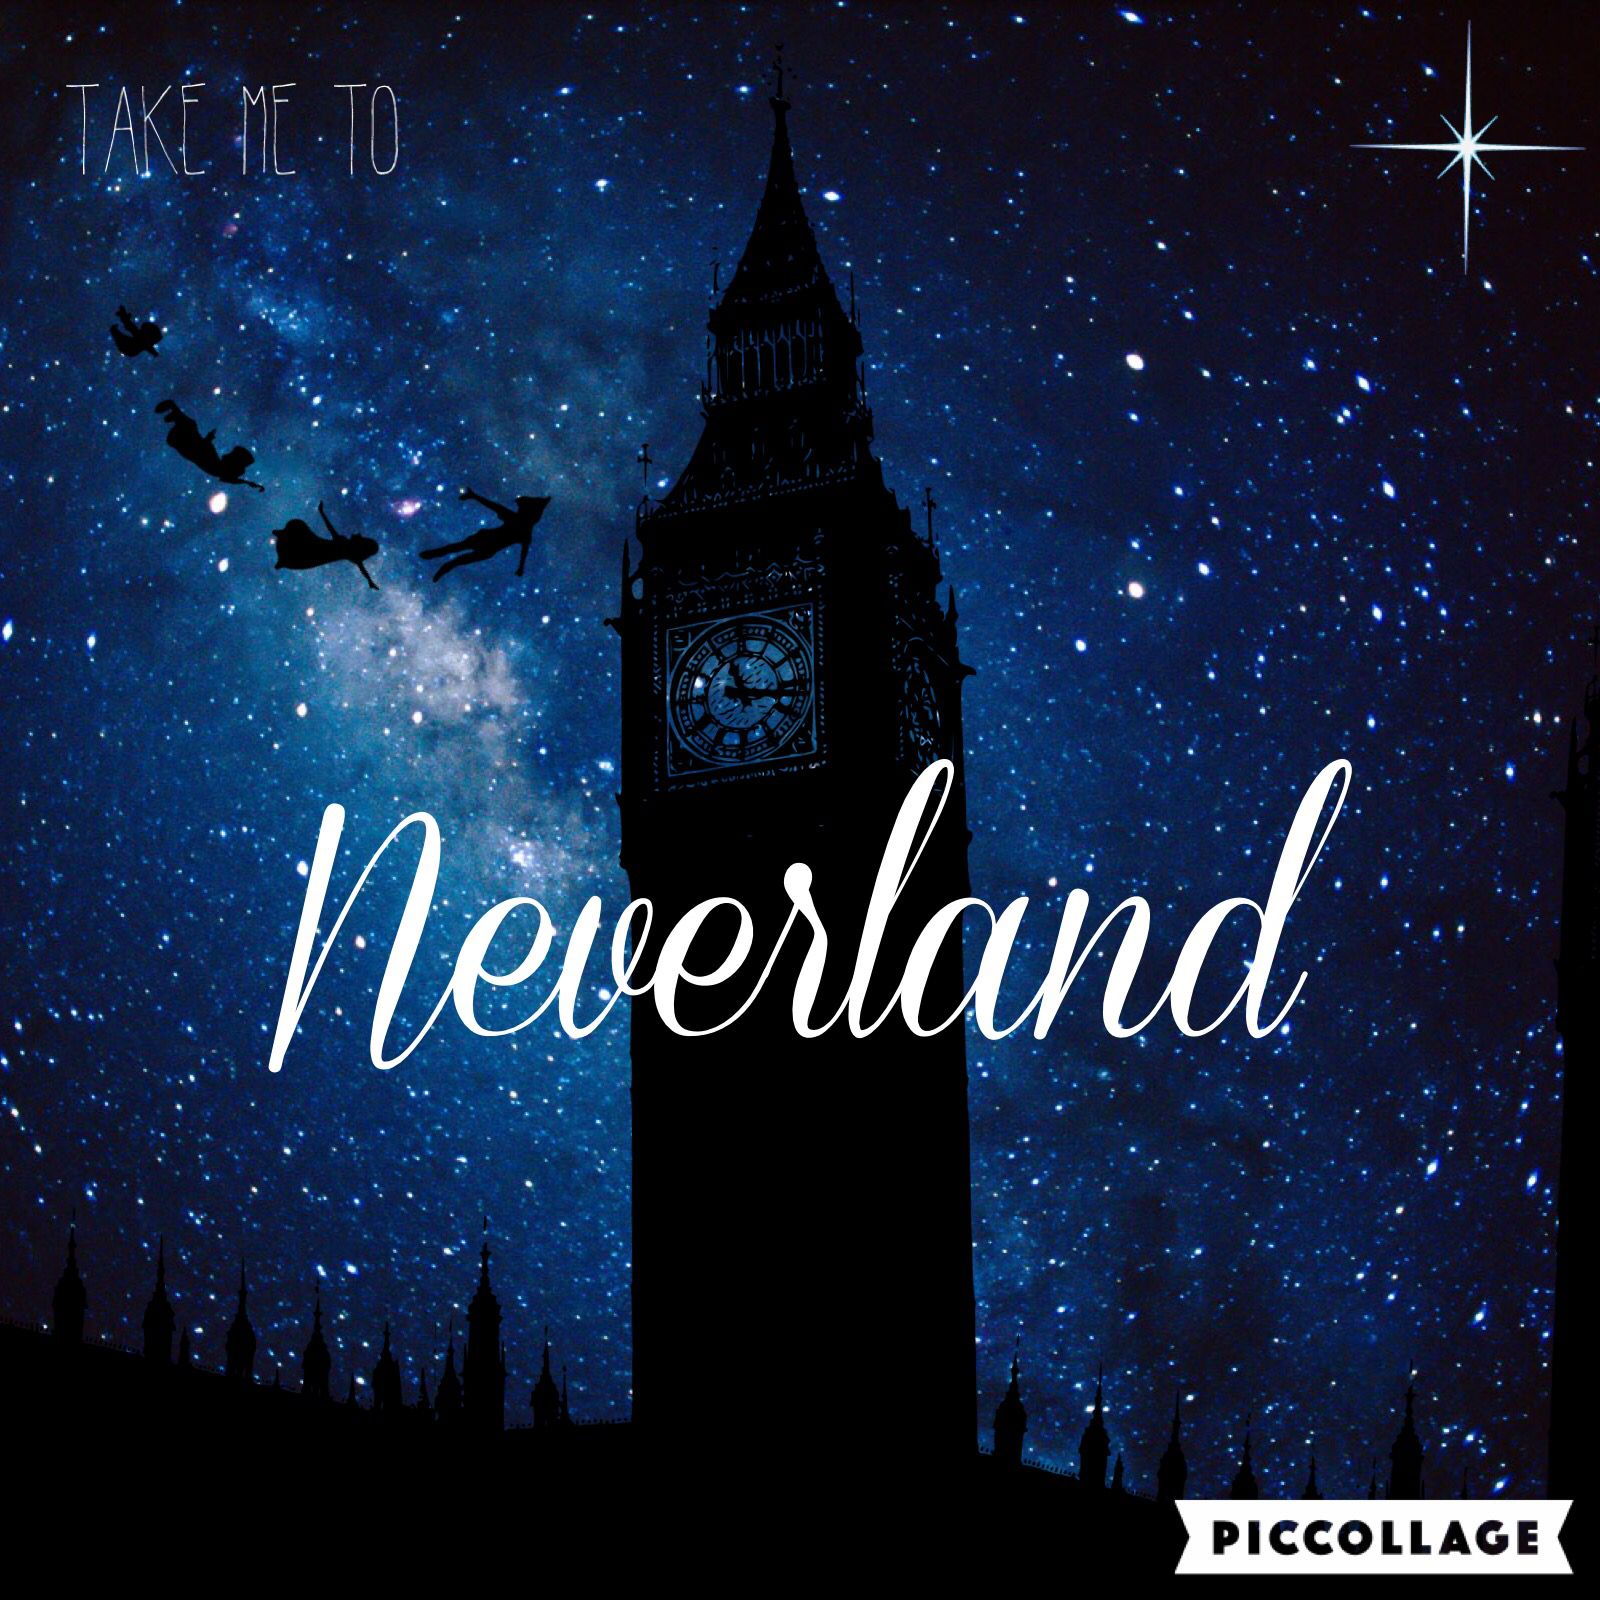 Sensational Quotes Wallpapers My Cute Neverland Wallpaper That I Made X Movie Posters